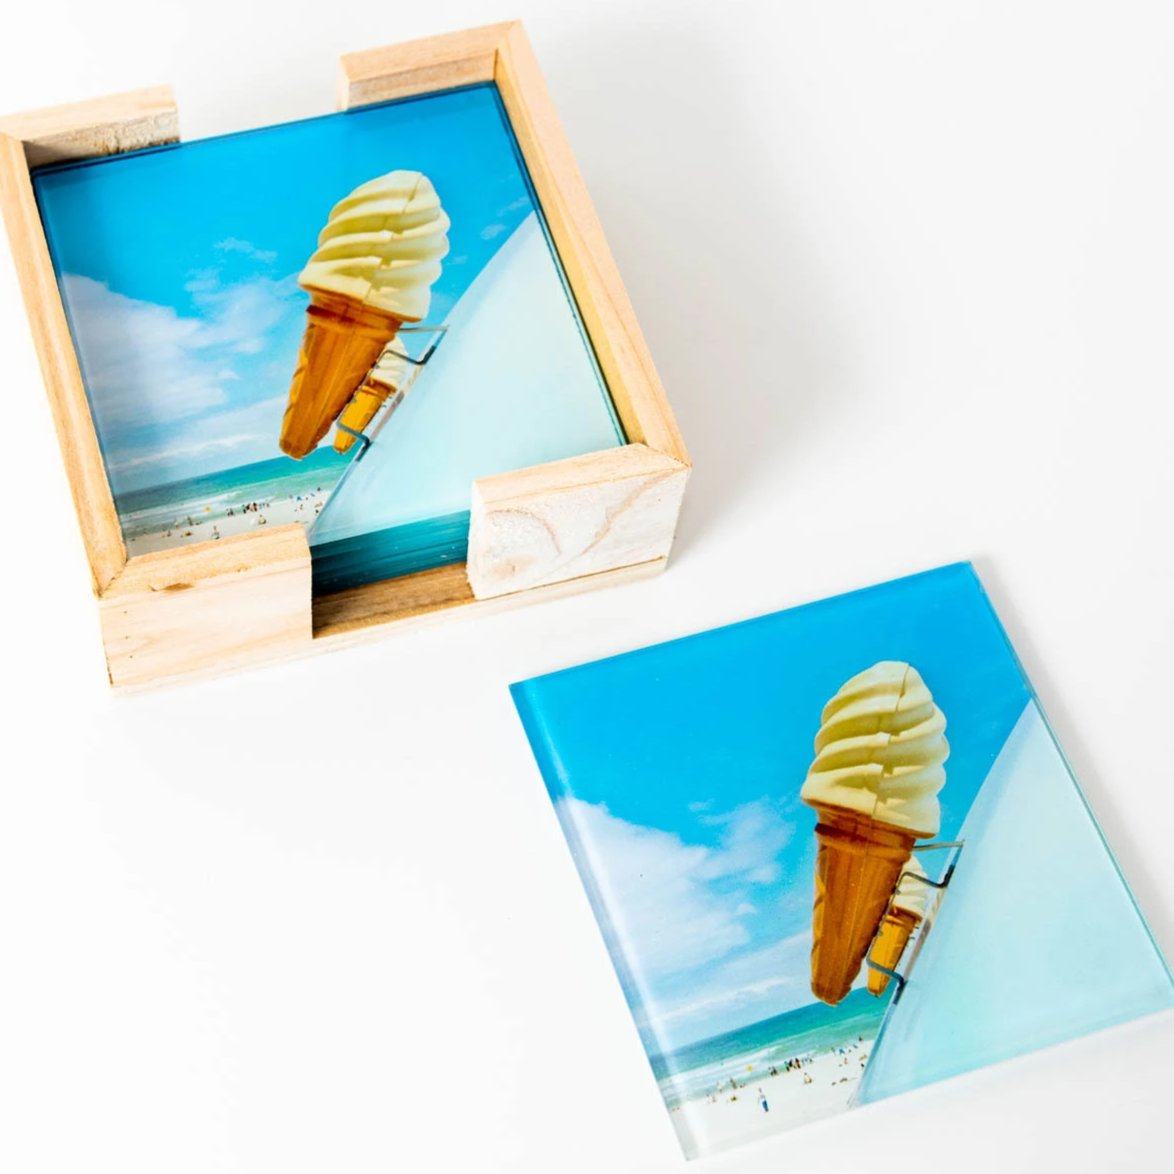 Set of 6 Ice-cream glass coasters, photography by Australian artist JD.  Photographed at Bondi Beach